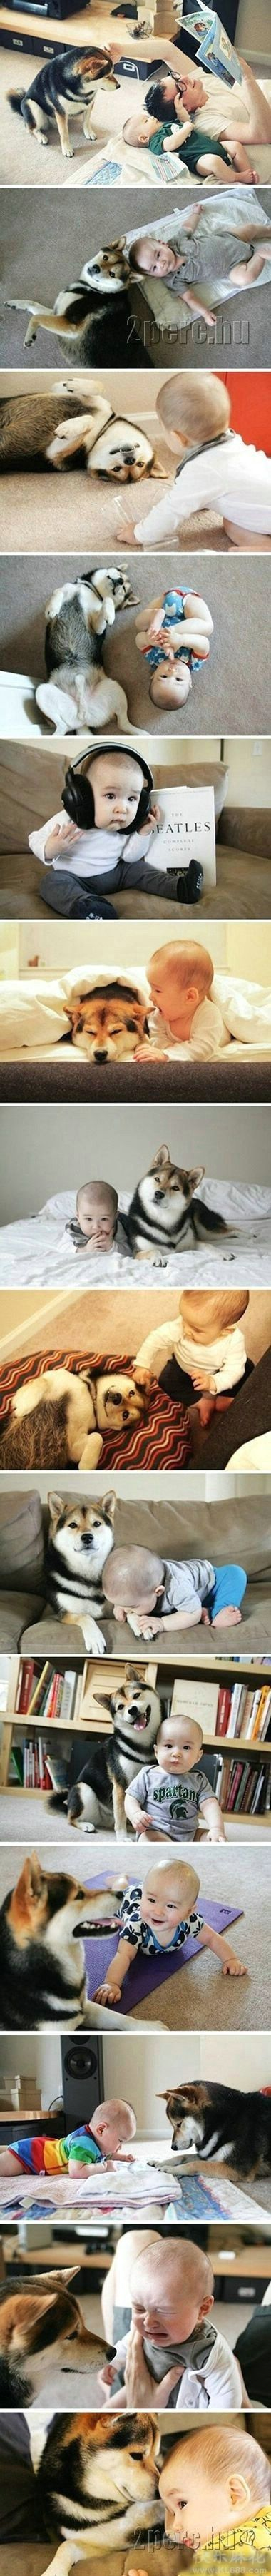 this is exactly why i want raidyn to have a dog so he can have his own little best friend